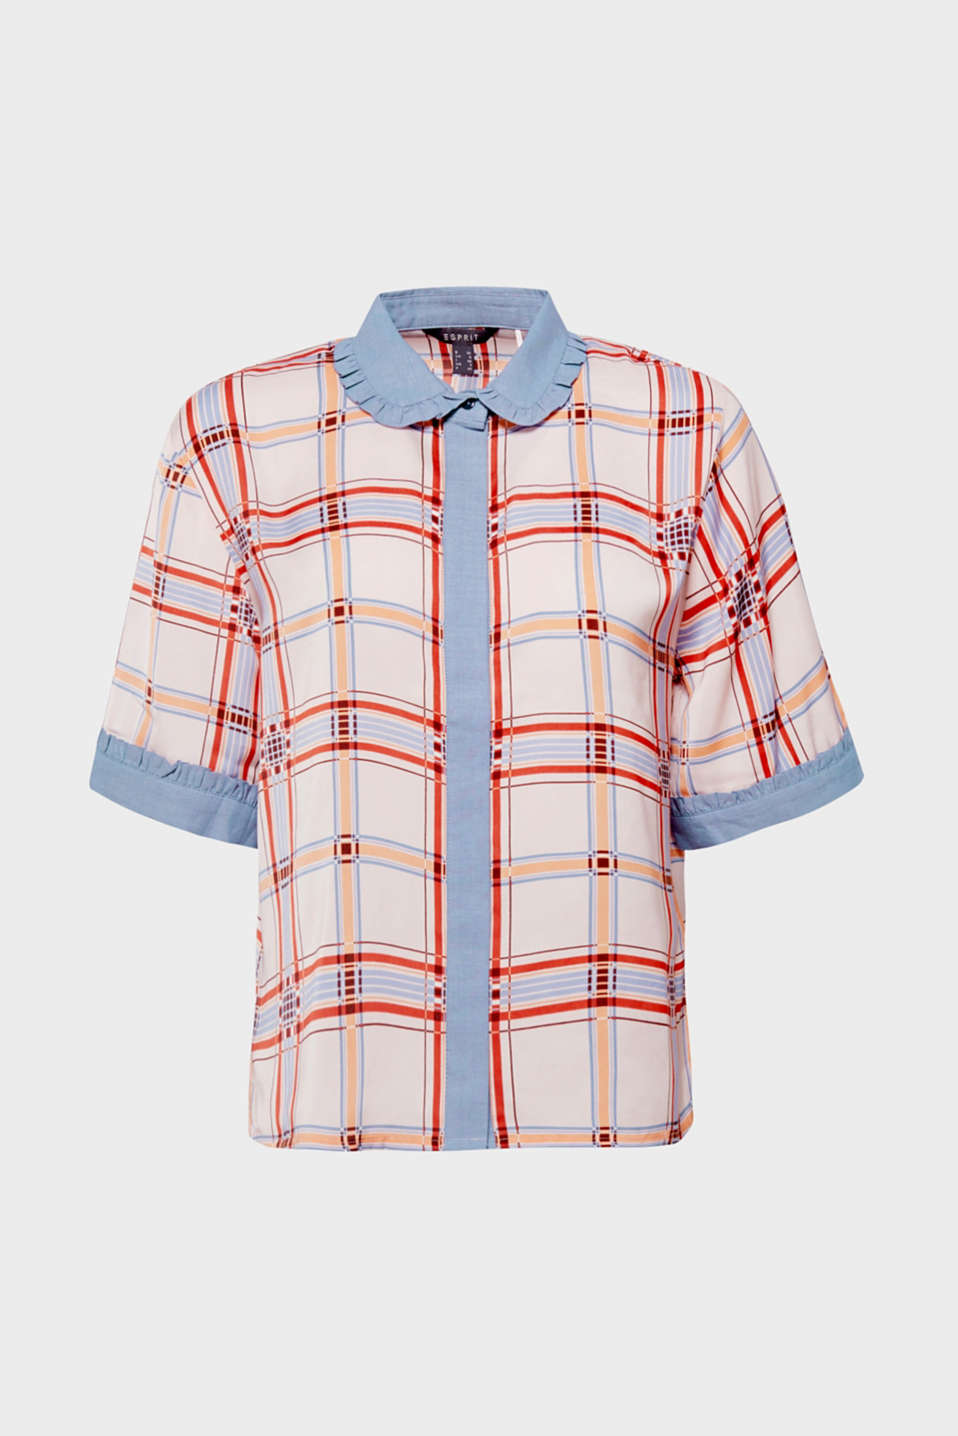 Casual cut, colourful checks, sporty chambray fabric and playful frills - this boxy blouse in flowing fabric offers a whole heap of fashion!